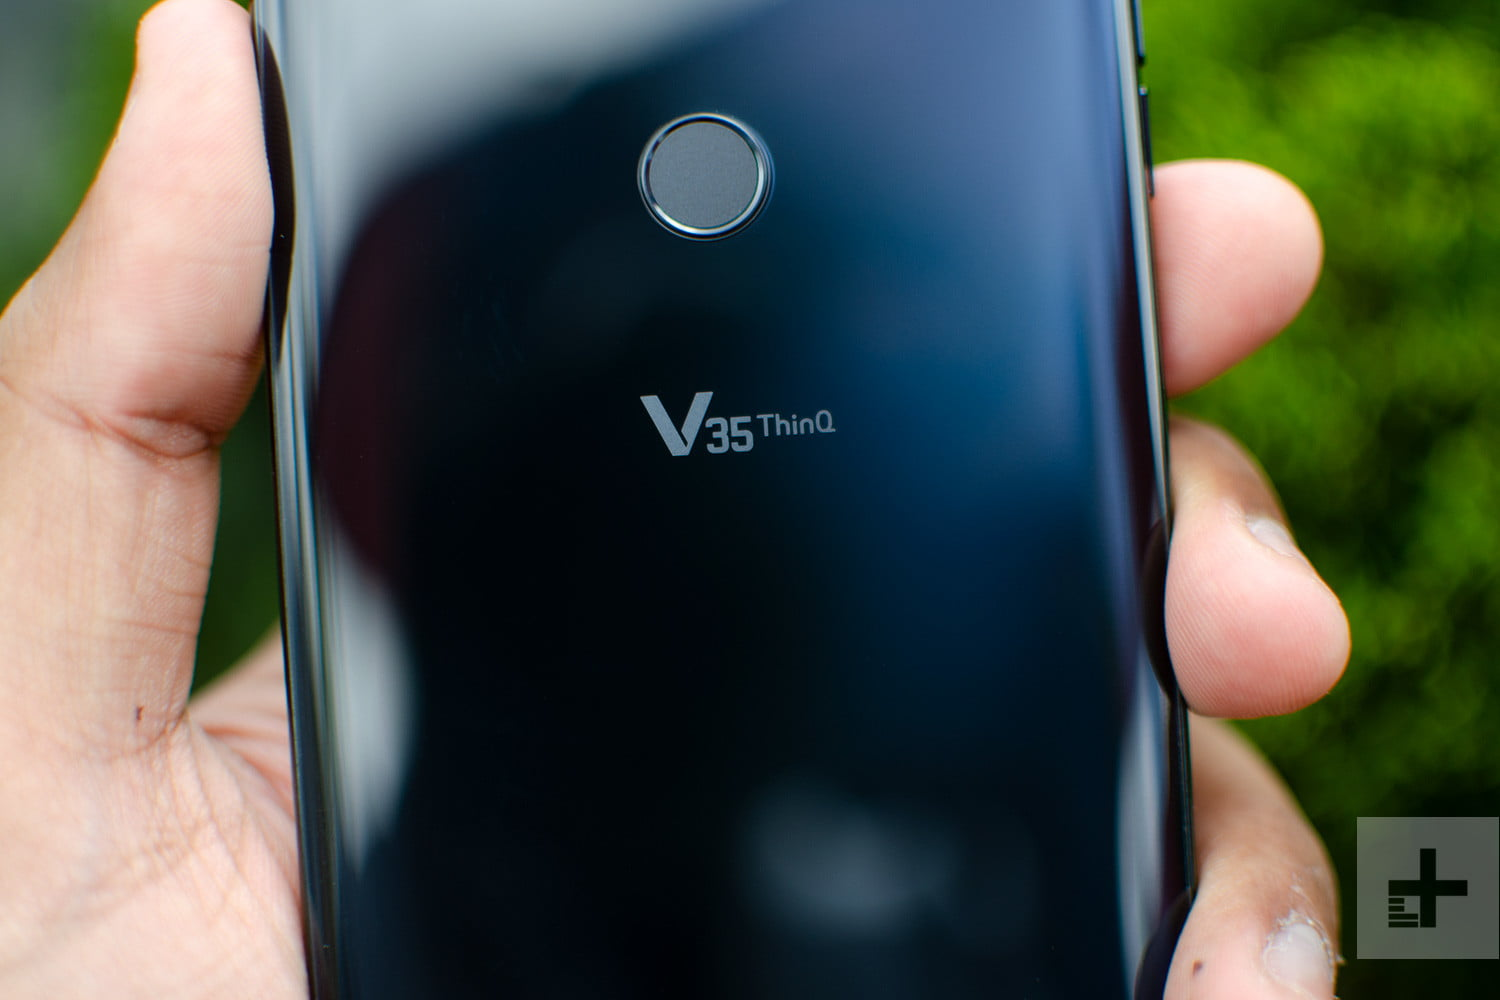 lg v35 thinq model logo